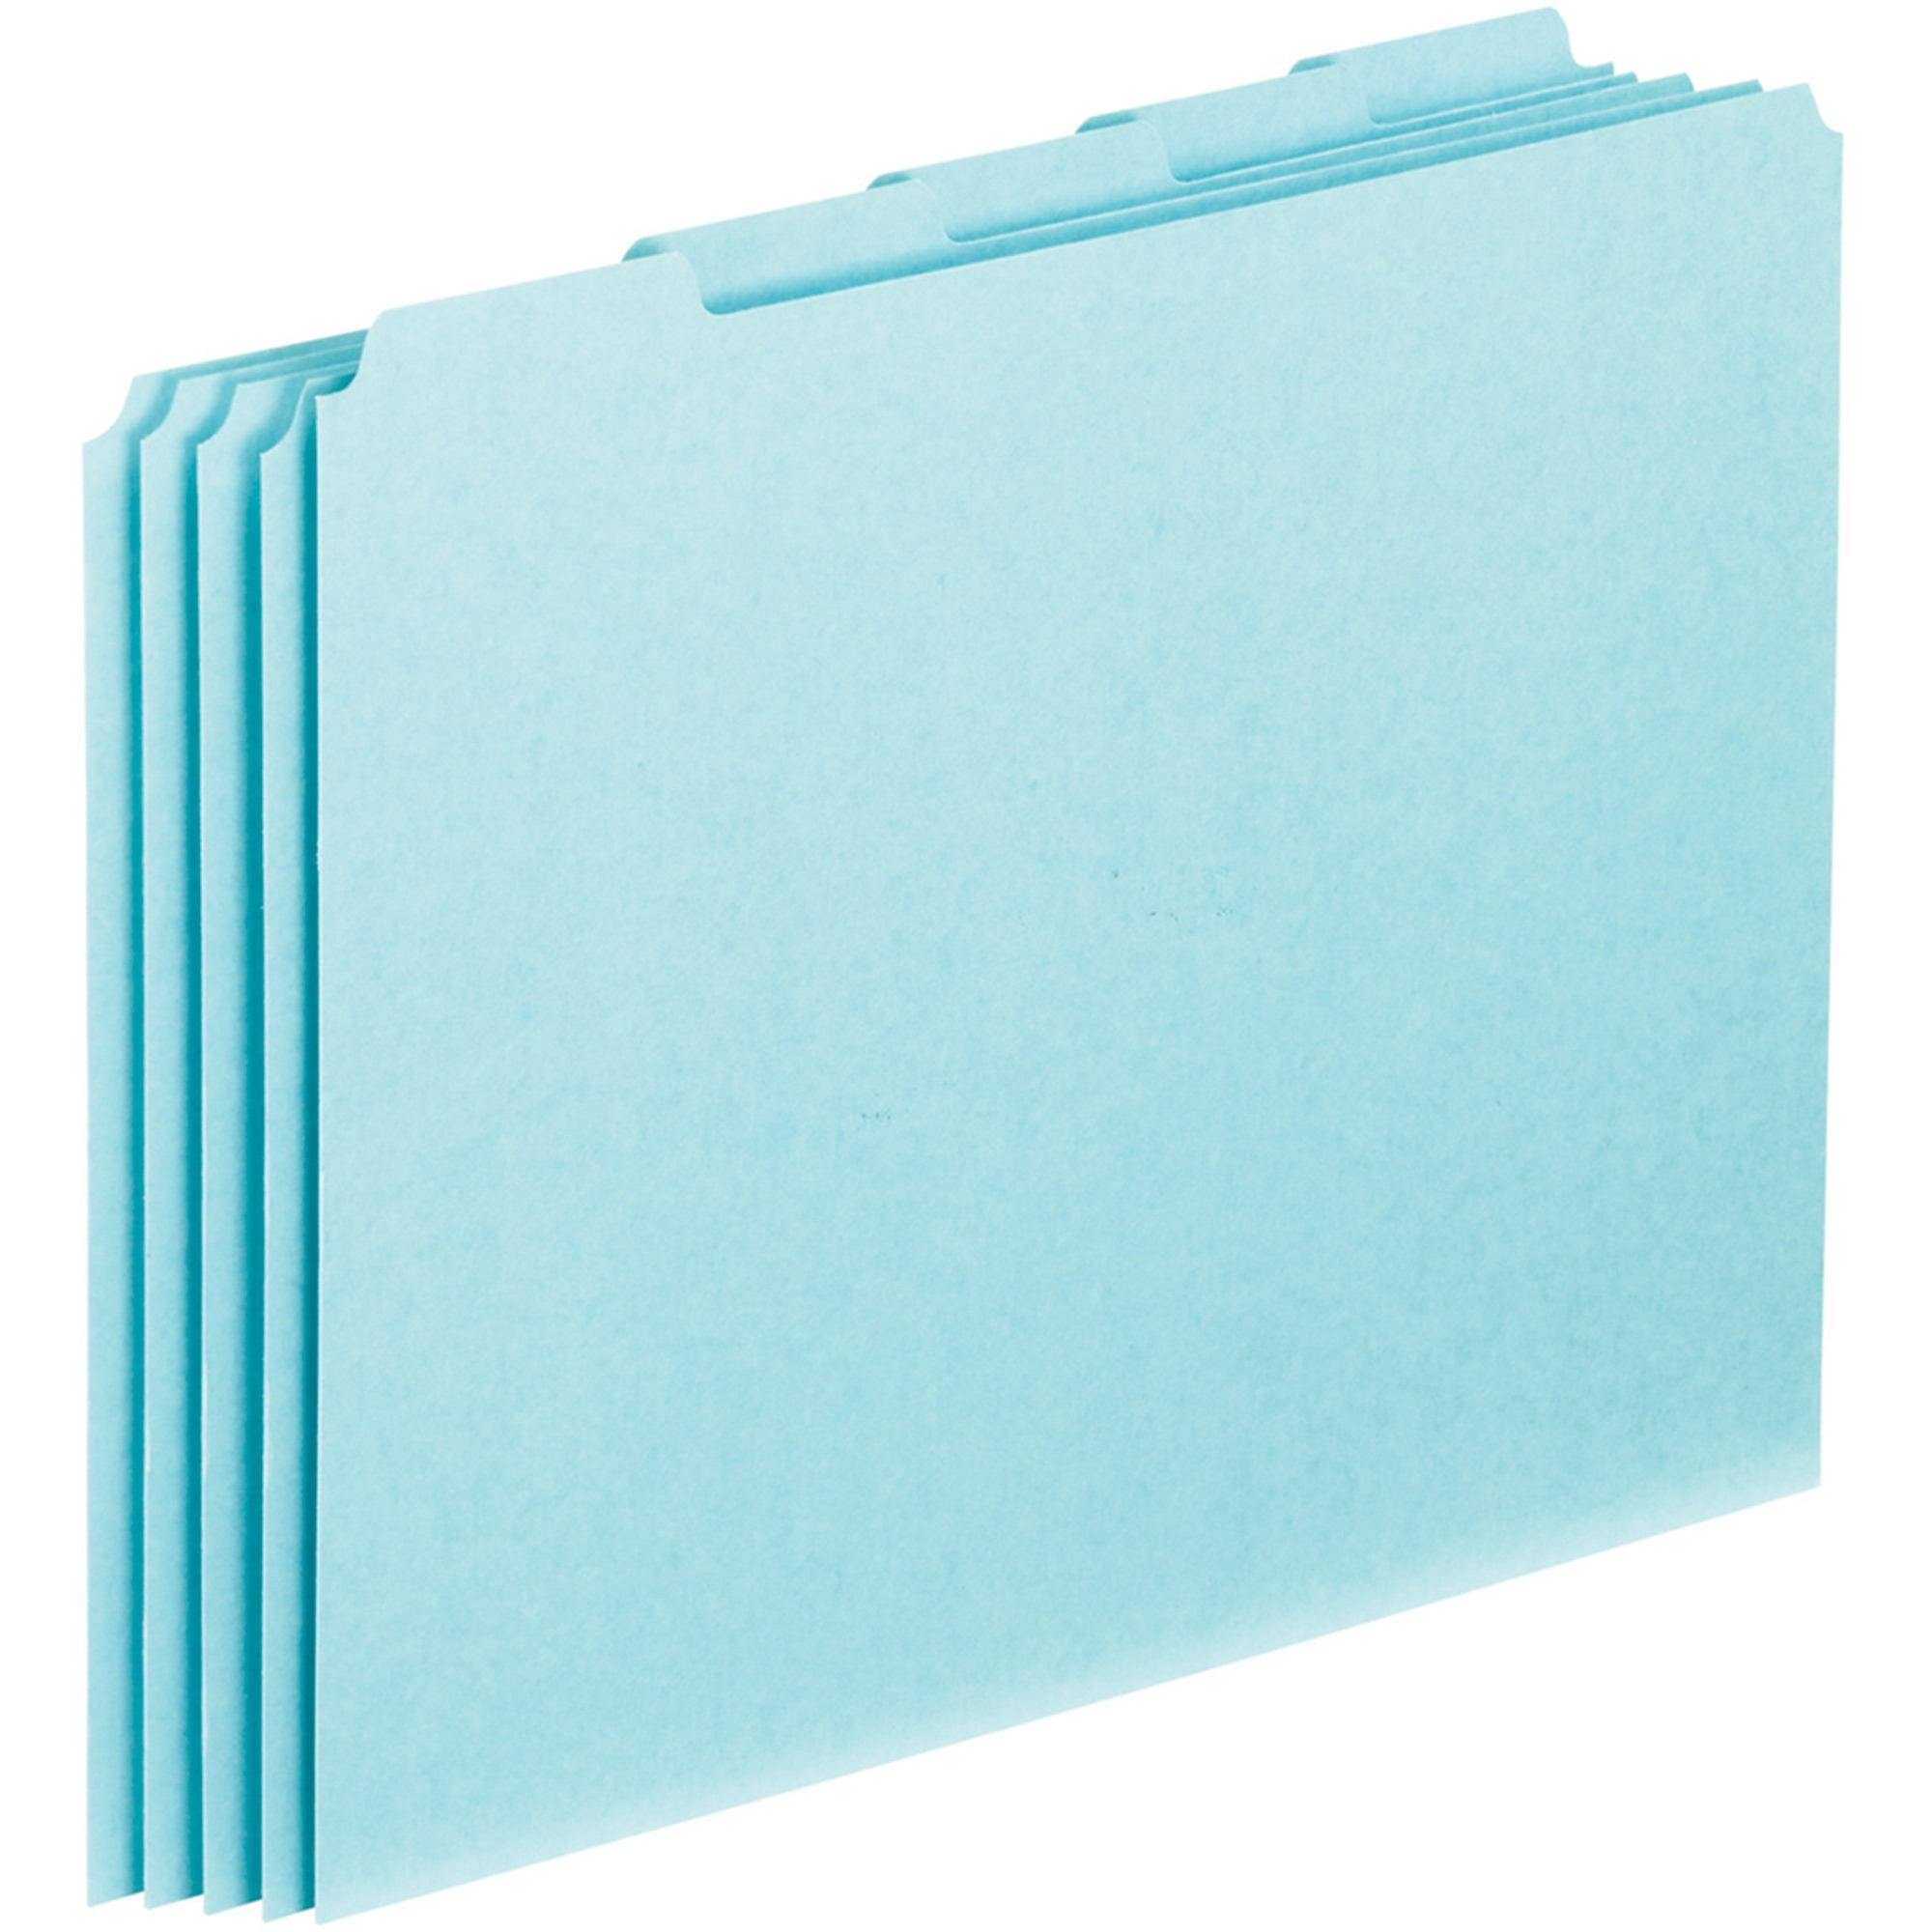 Pendaflex, PFXPN205, 1 5-cut Blank Tab Pressboard File Guides, 100   Box by TOPS Products